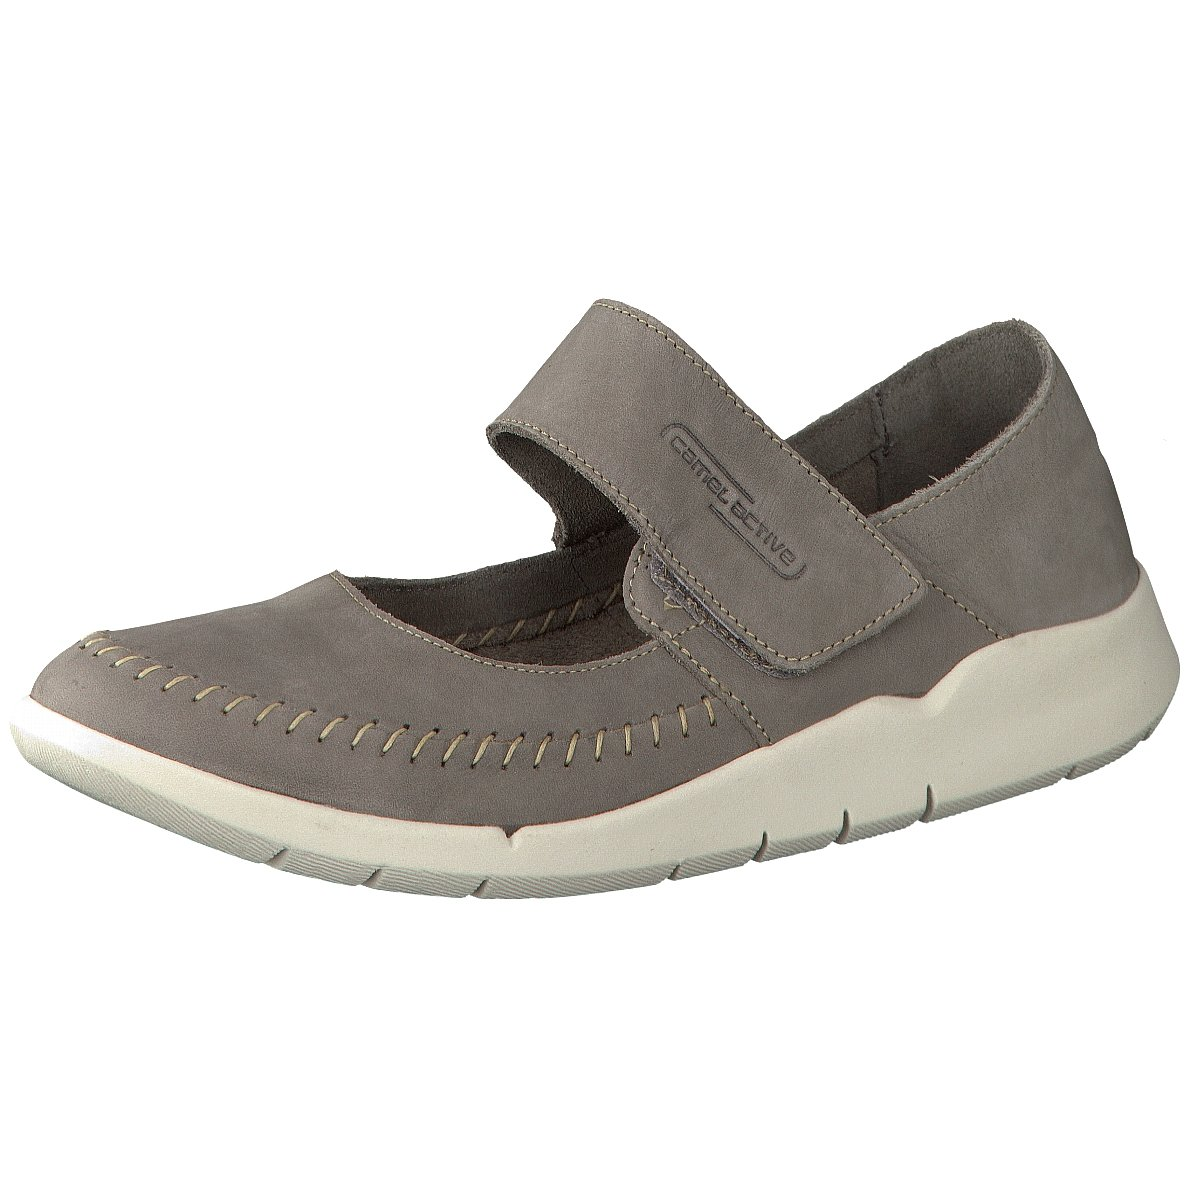 NEU camel active Damen Slipper Cloud 71 864.71.03 grau 272748